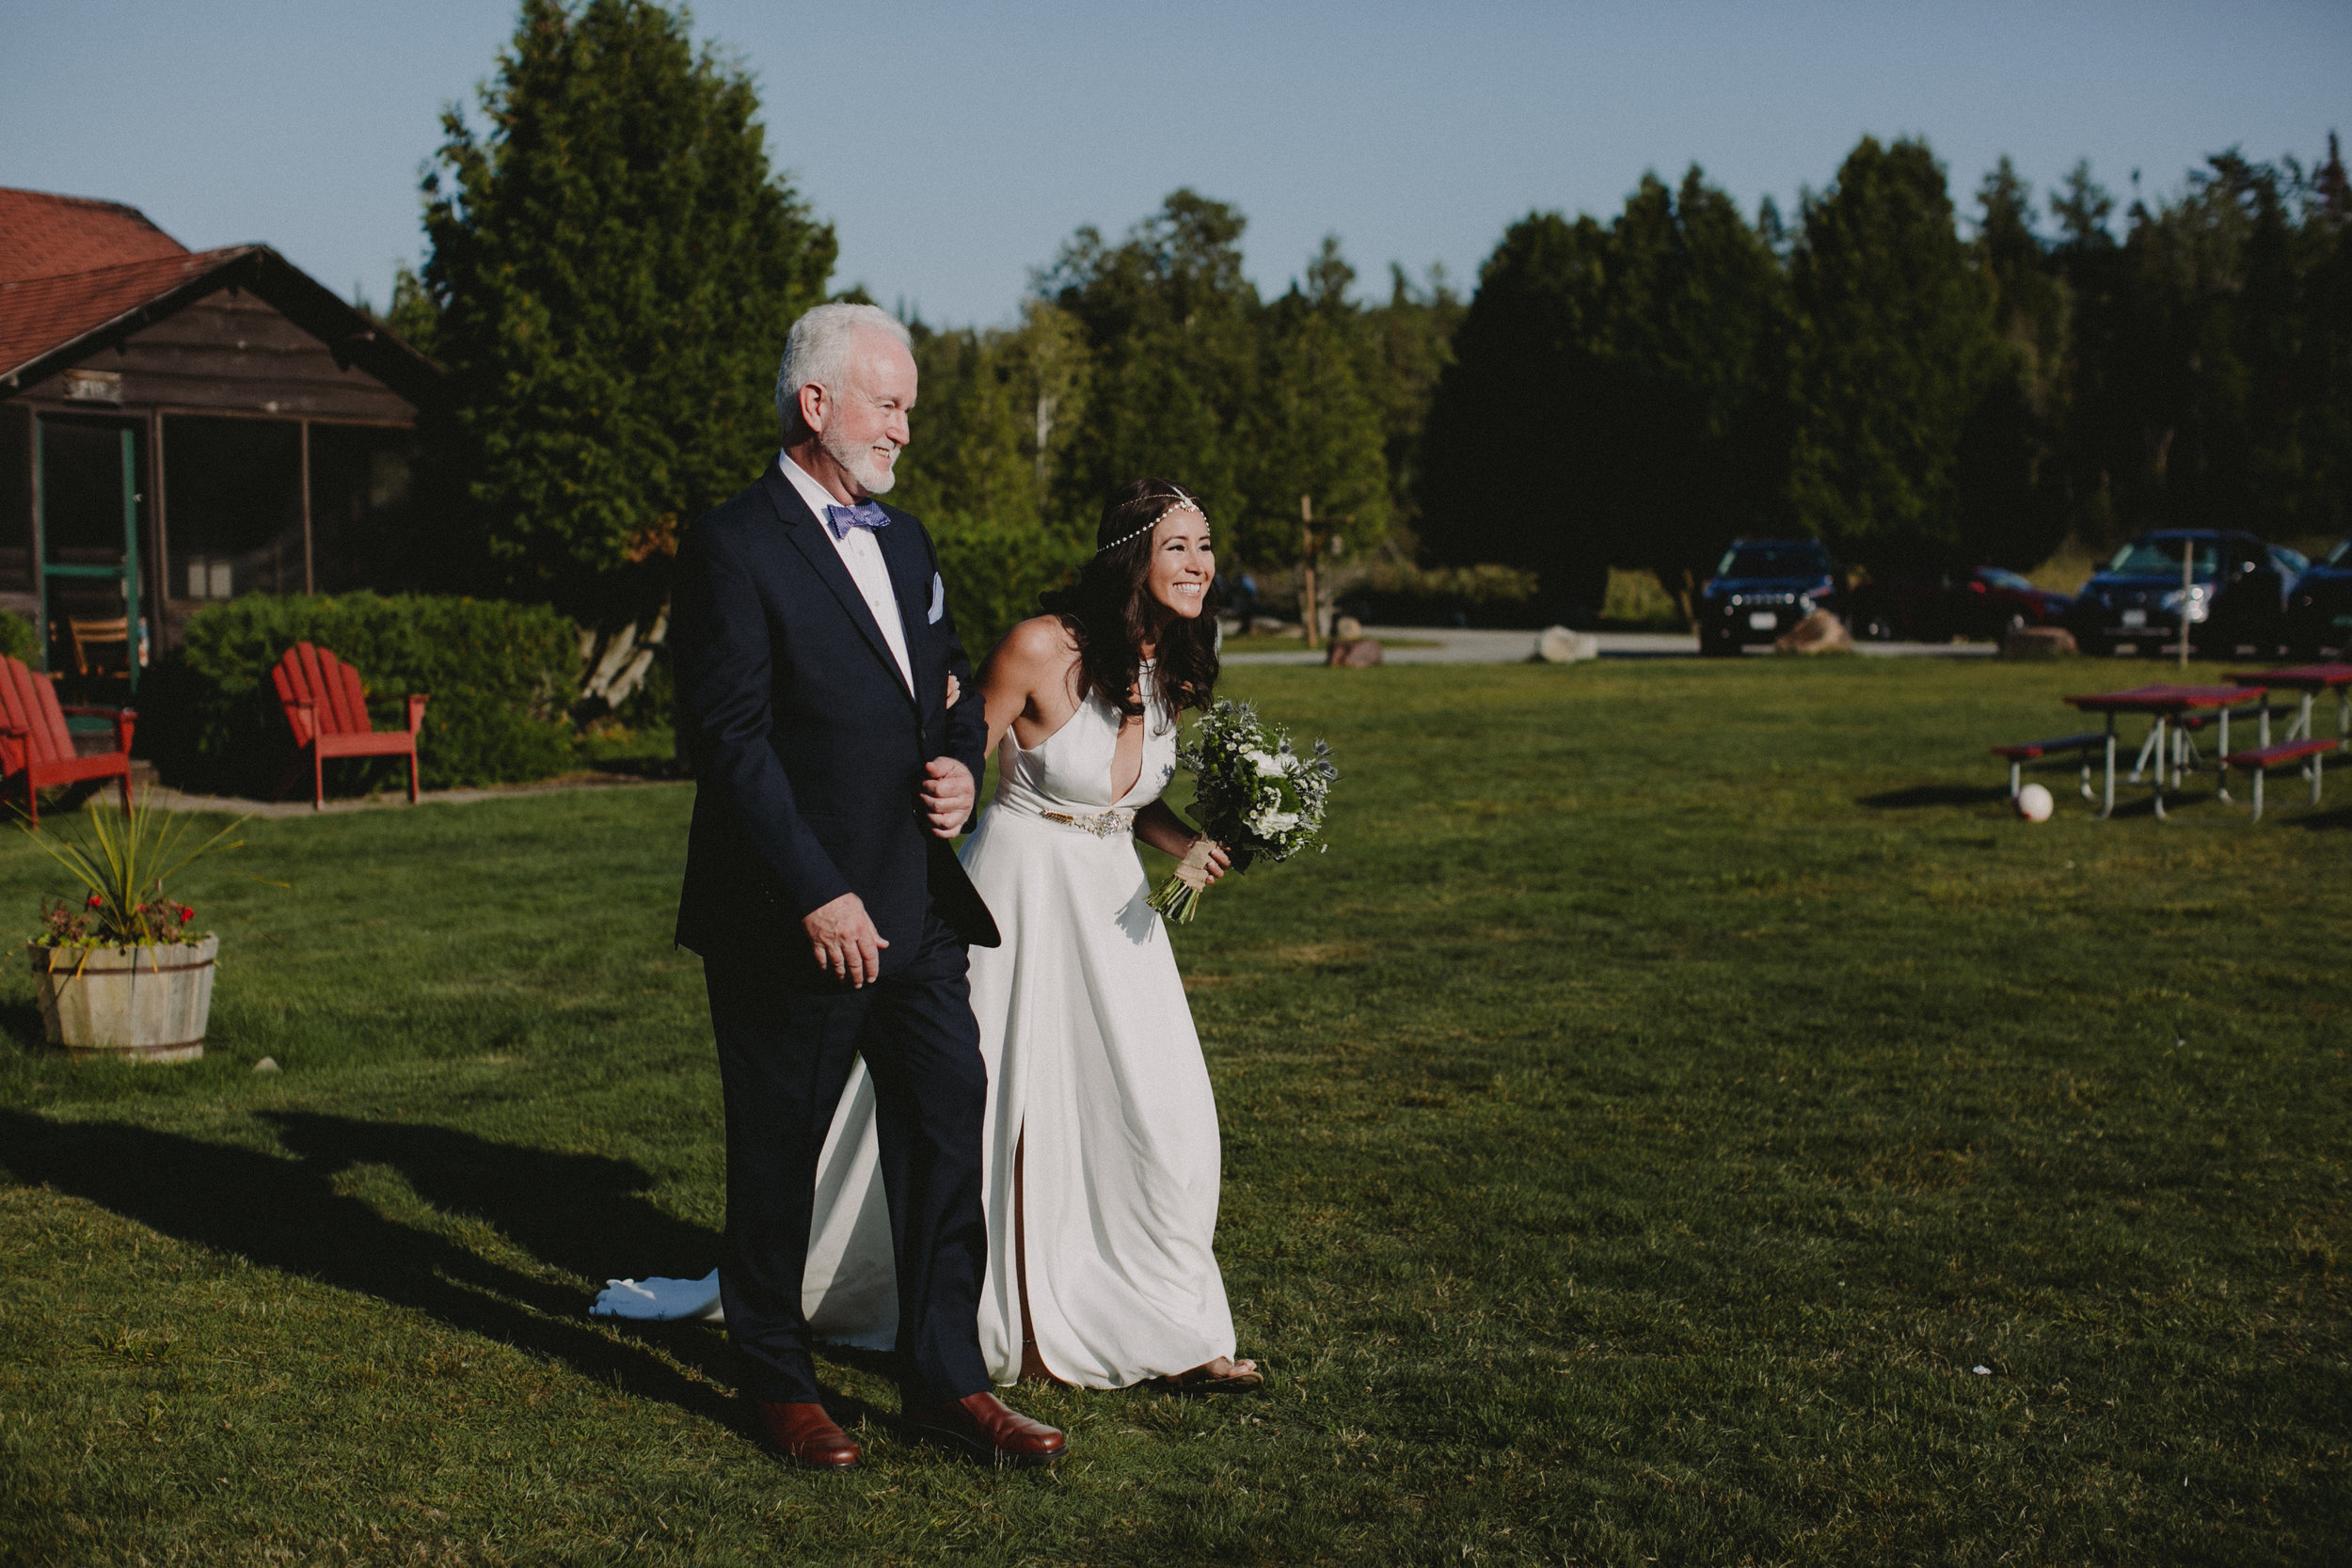 AmpersandBayResortWeddingChellise_Michael_Photography_Chellise_Michael-260.jpg